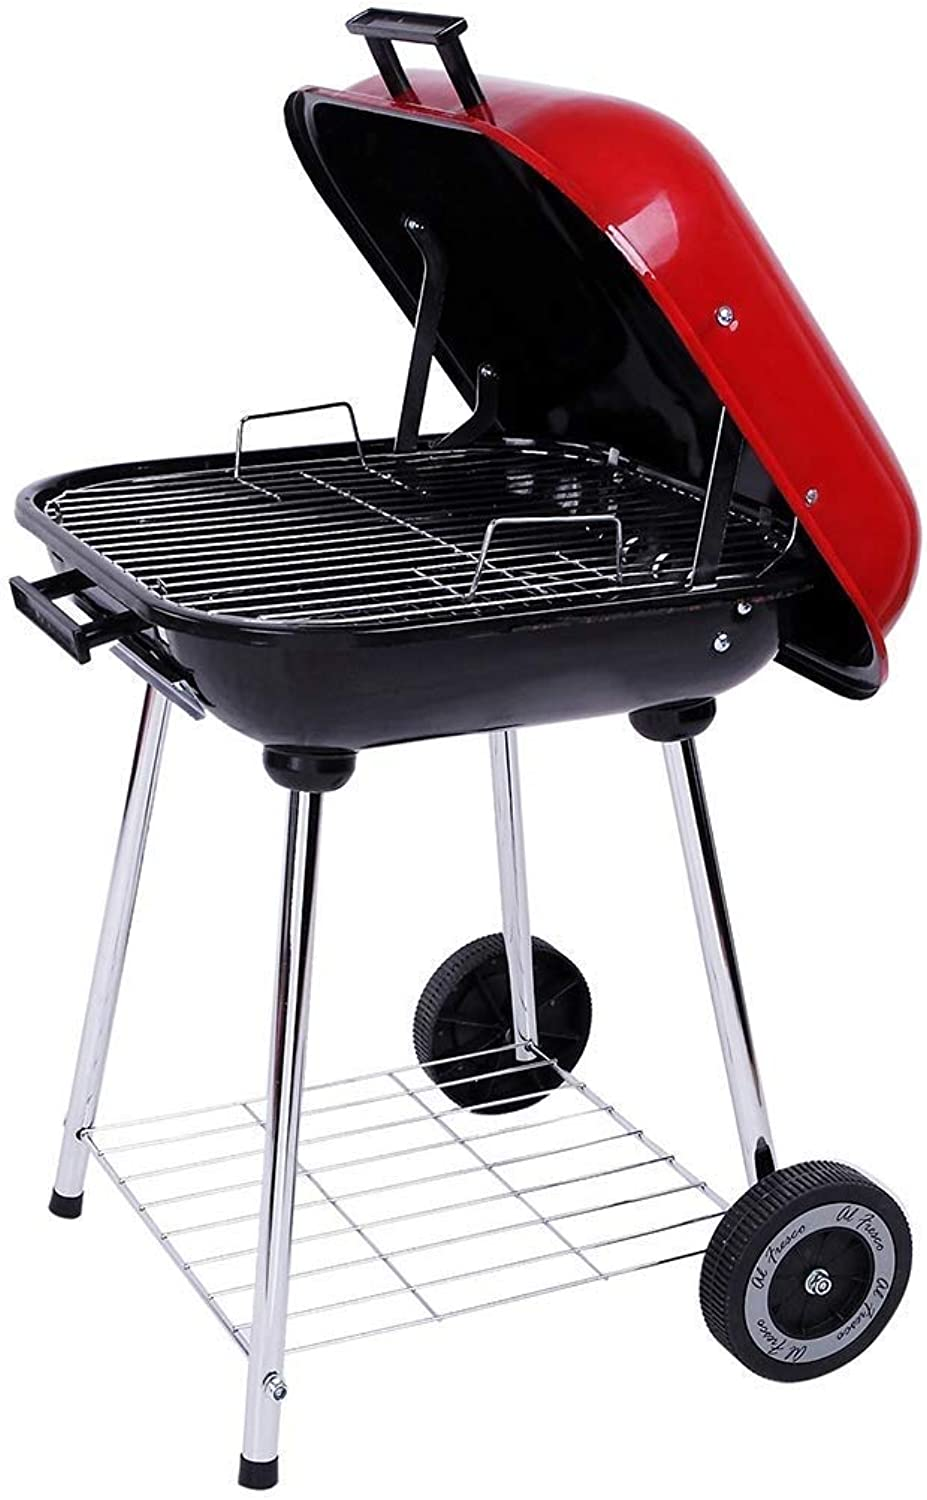 2fd0ffe295131 BBQ Supplies Barbecue BBQ Outdoor Folding Charcoal Grill People ...